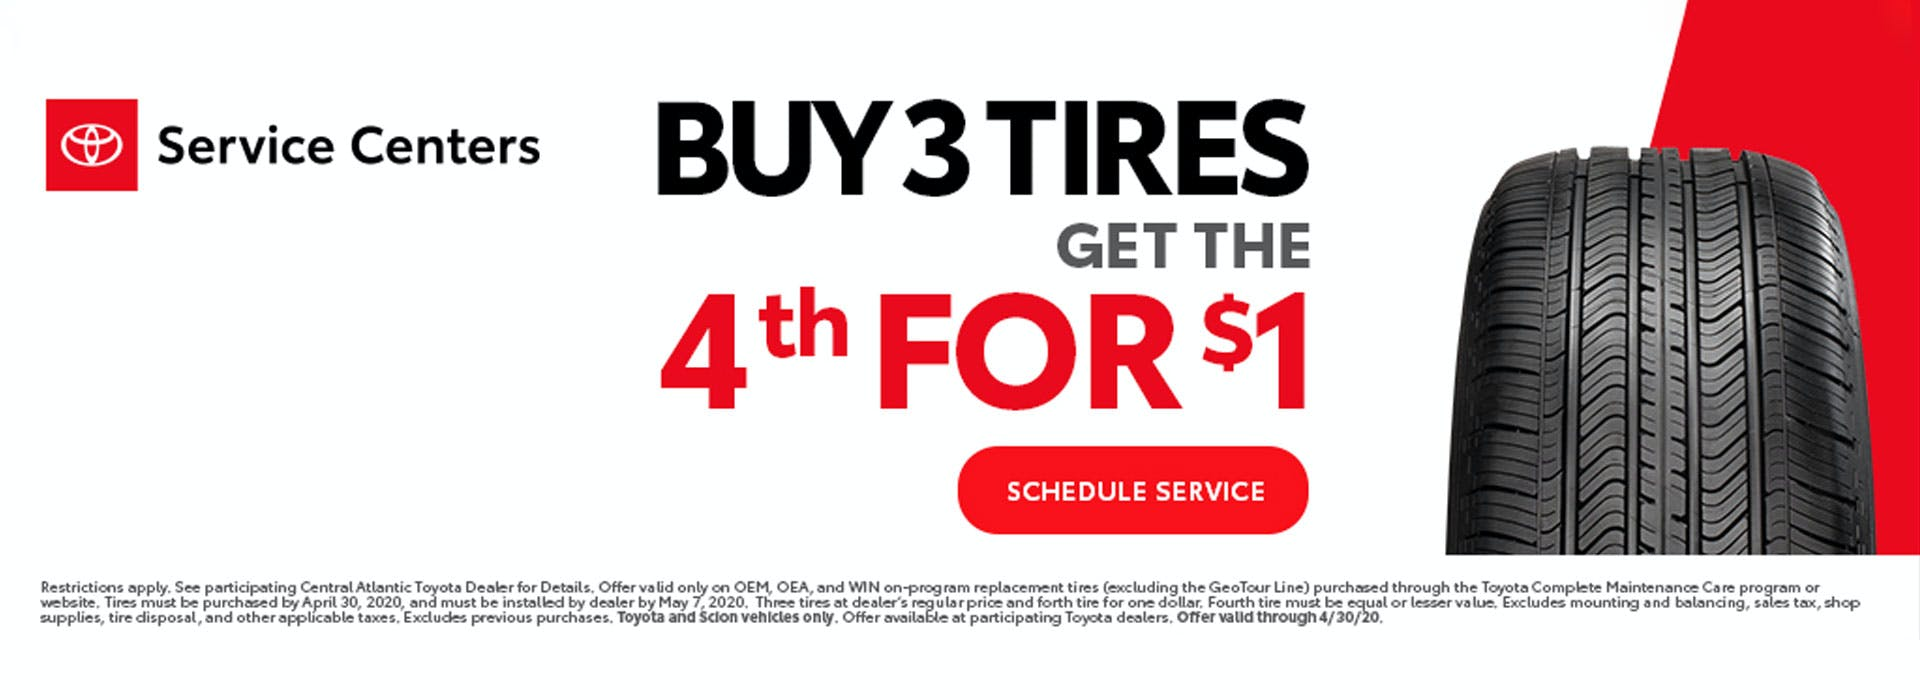 toyota service centers - buy 3 tires, get the fourth for $1